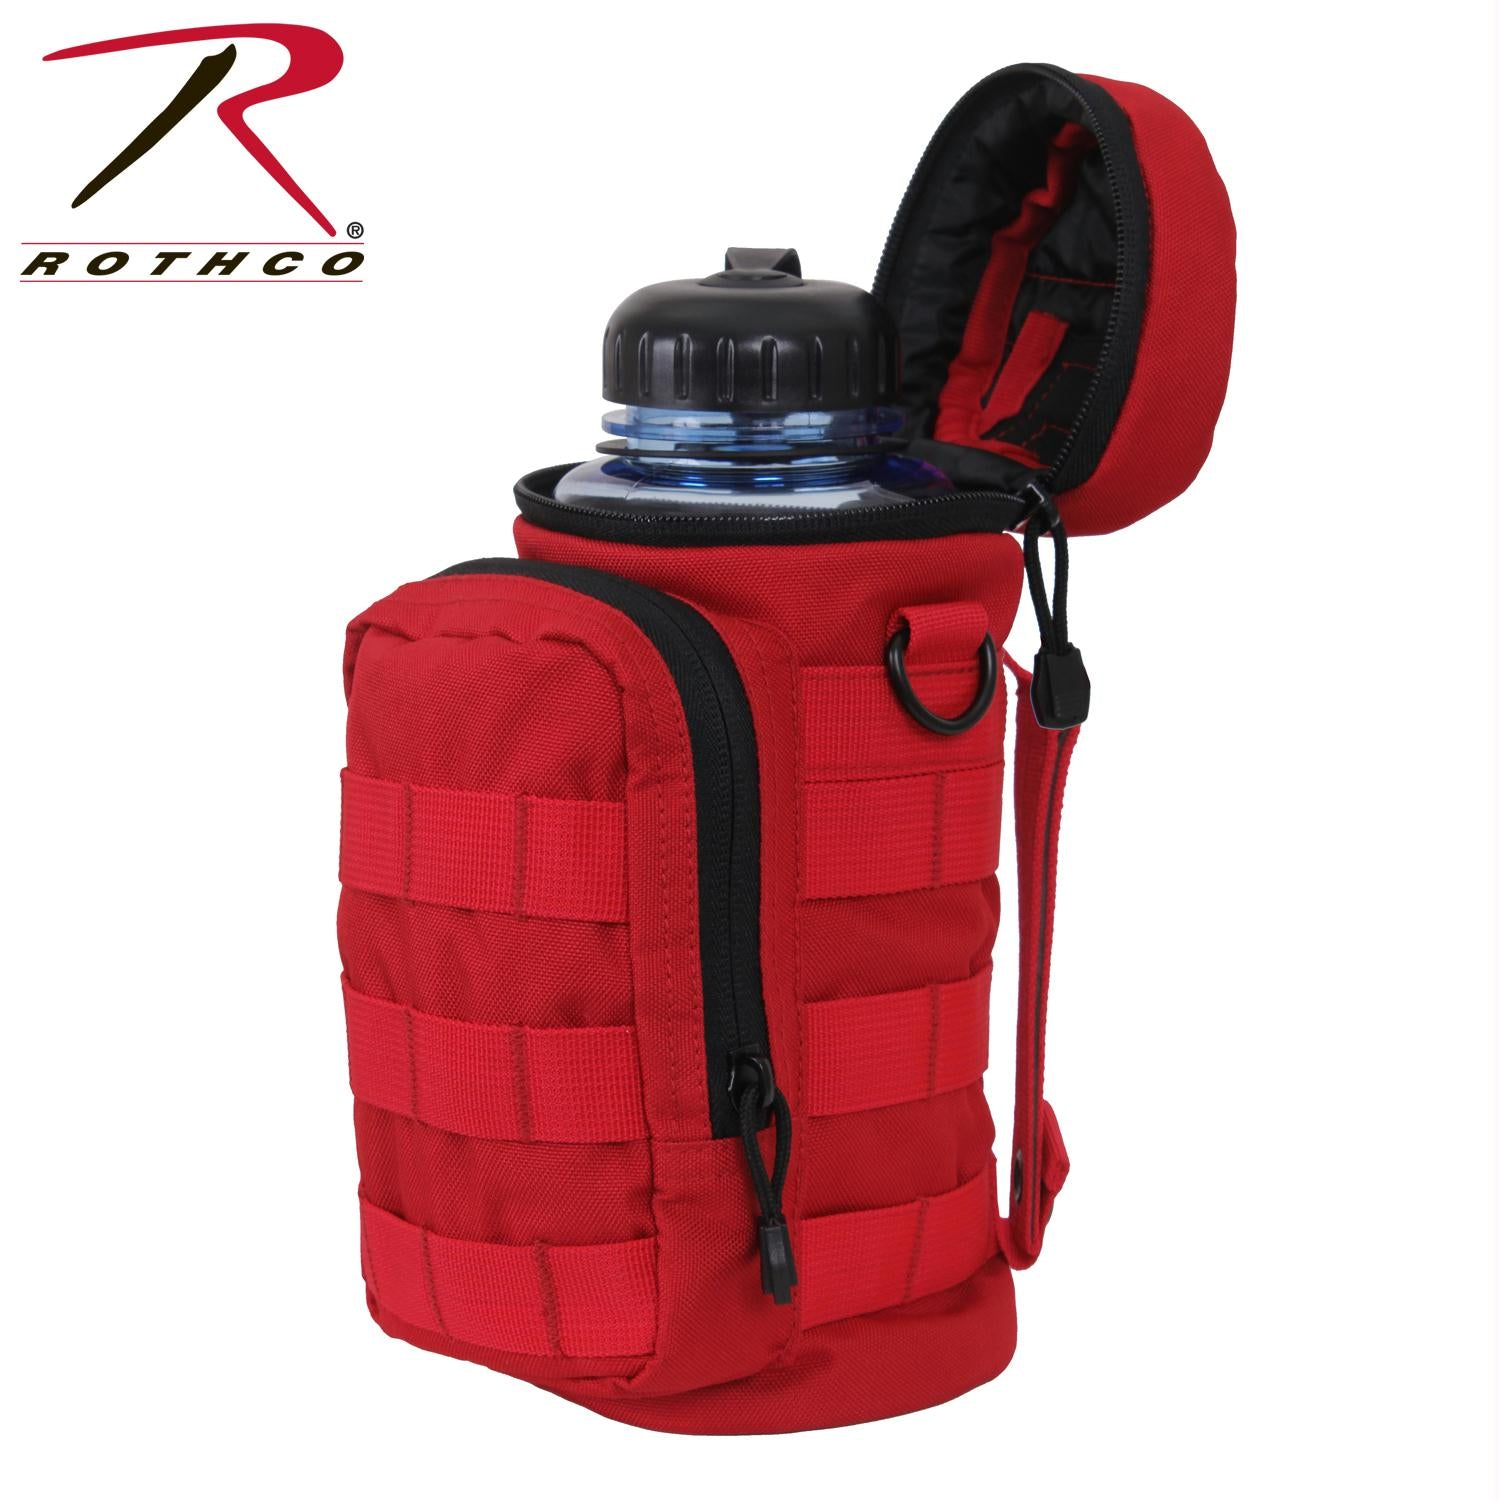 Rothco MOLLE Compatible Water Bottle Pouch - Red